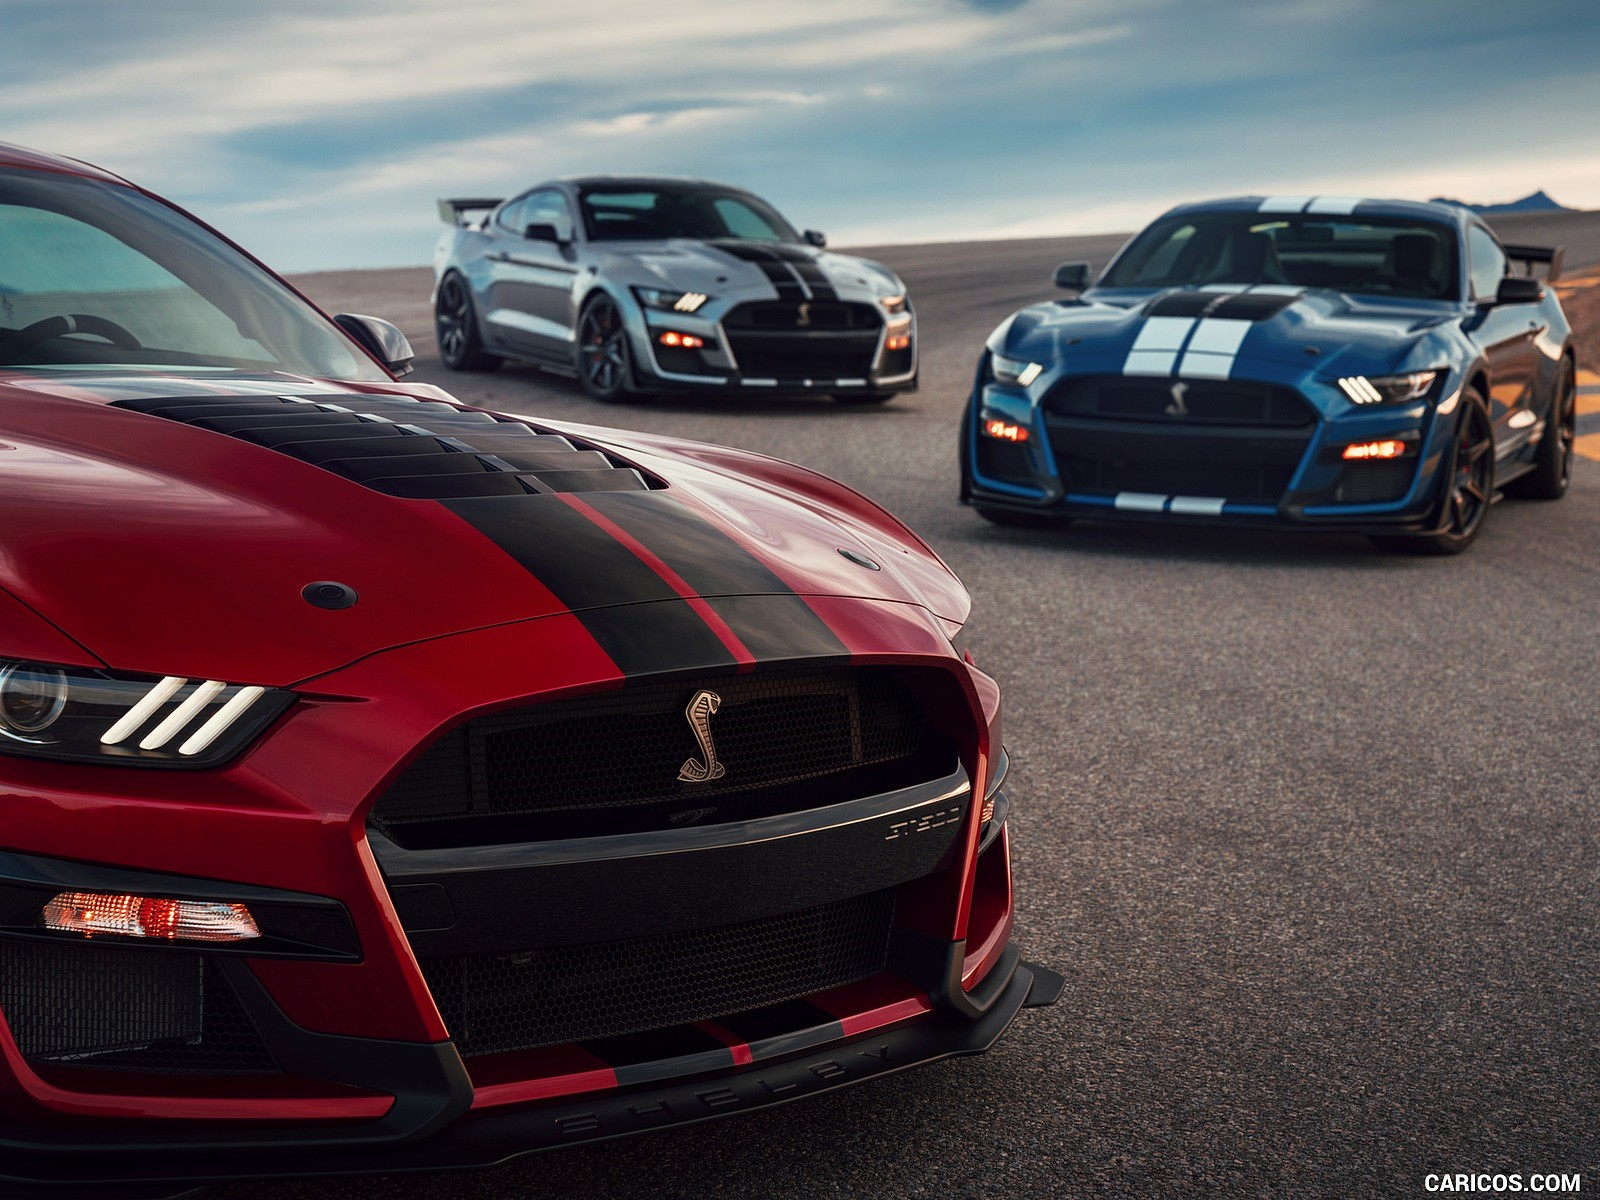 Ford Mustang Shelby uhd wallpaper 1